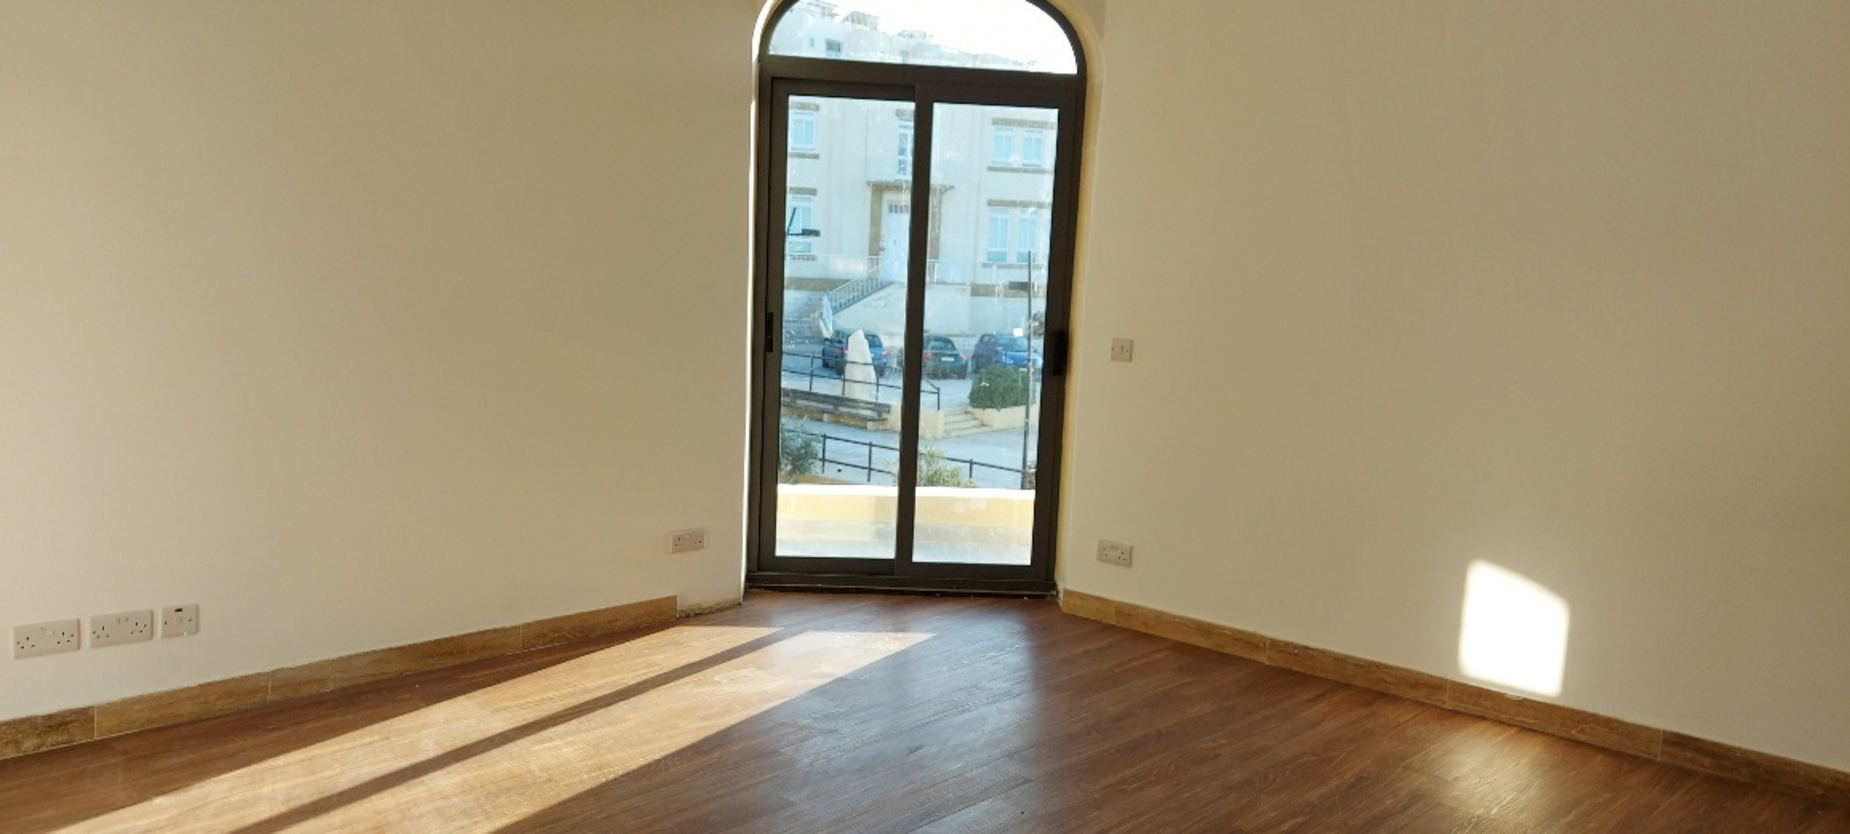 4 bed Penthouse For Sale in Mellieha, Mellieha - thumb 12